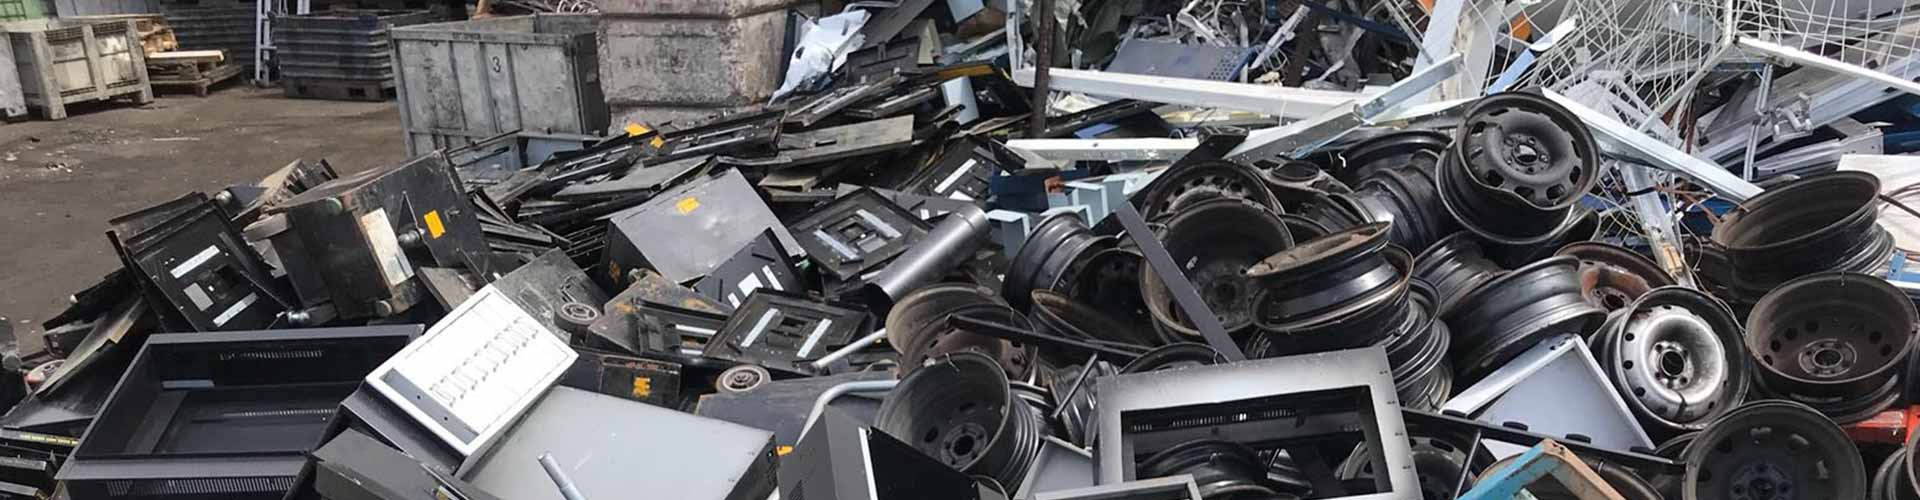 Free Scrap Metal Clearances